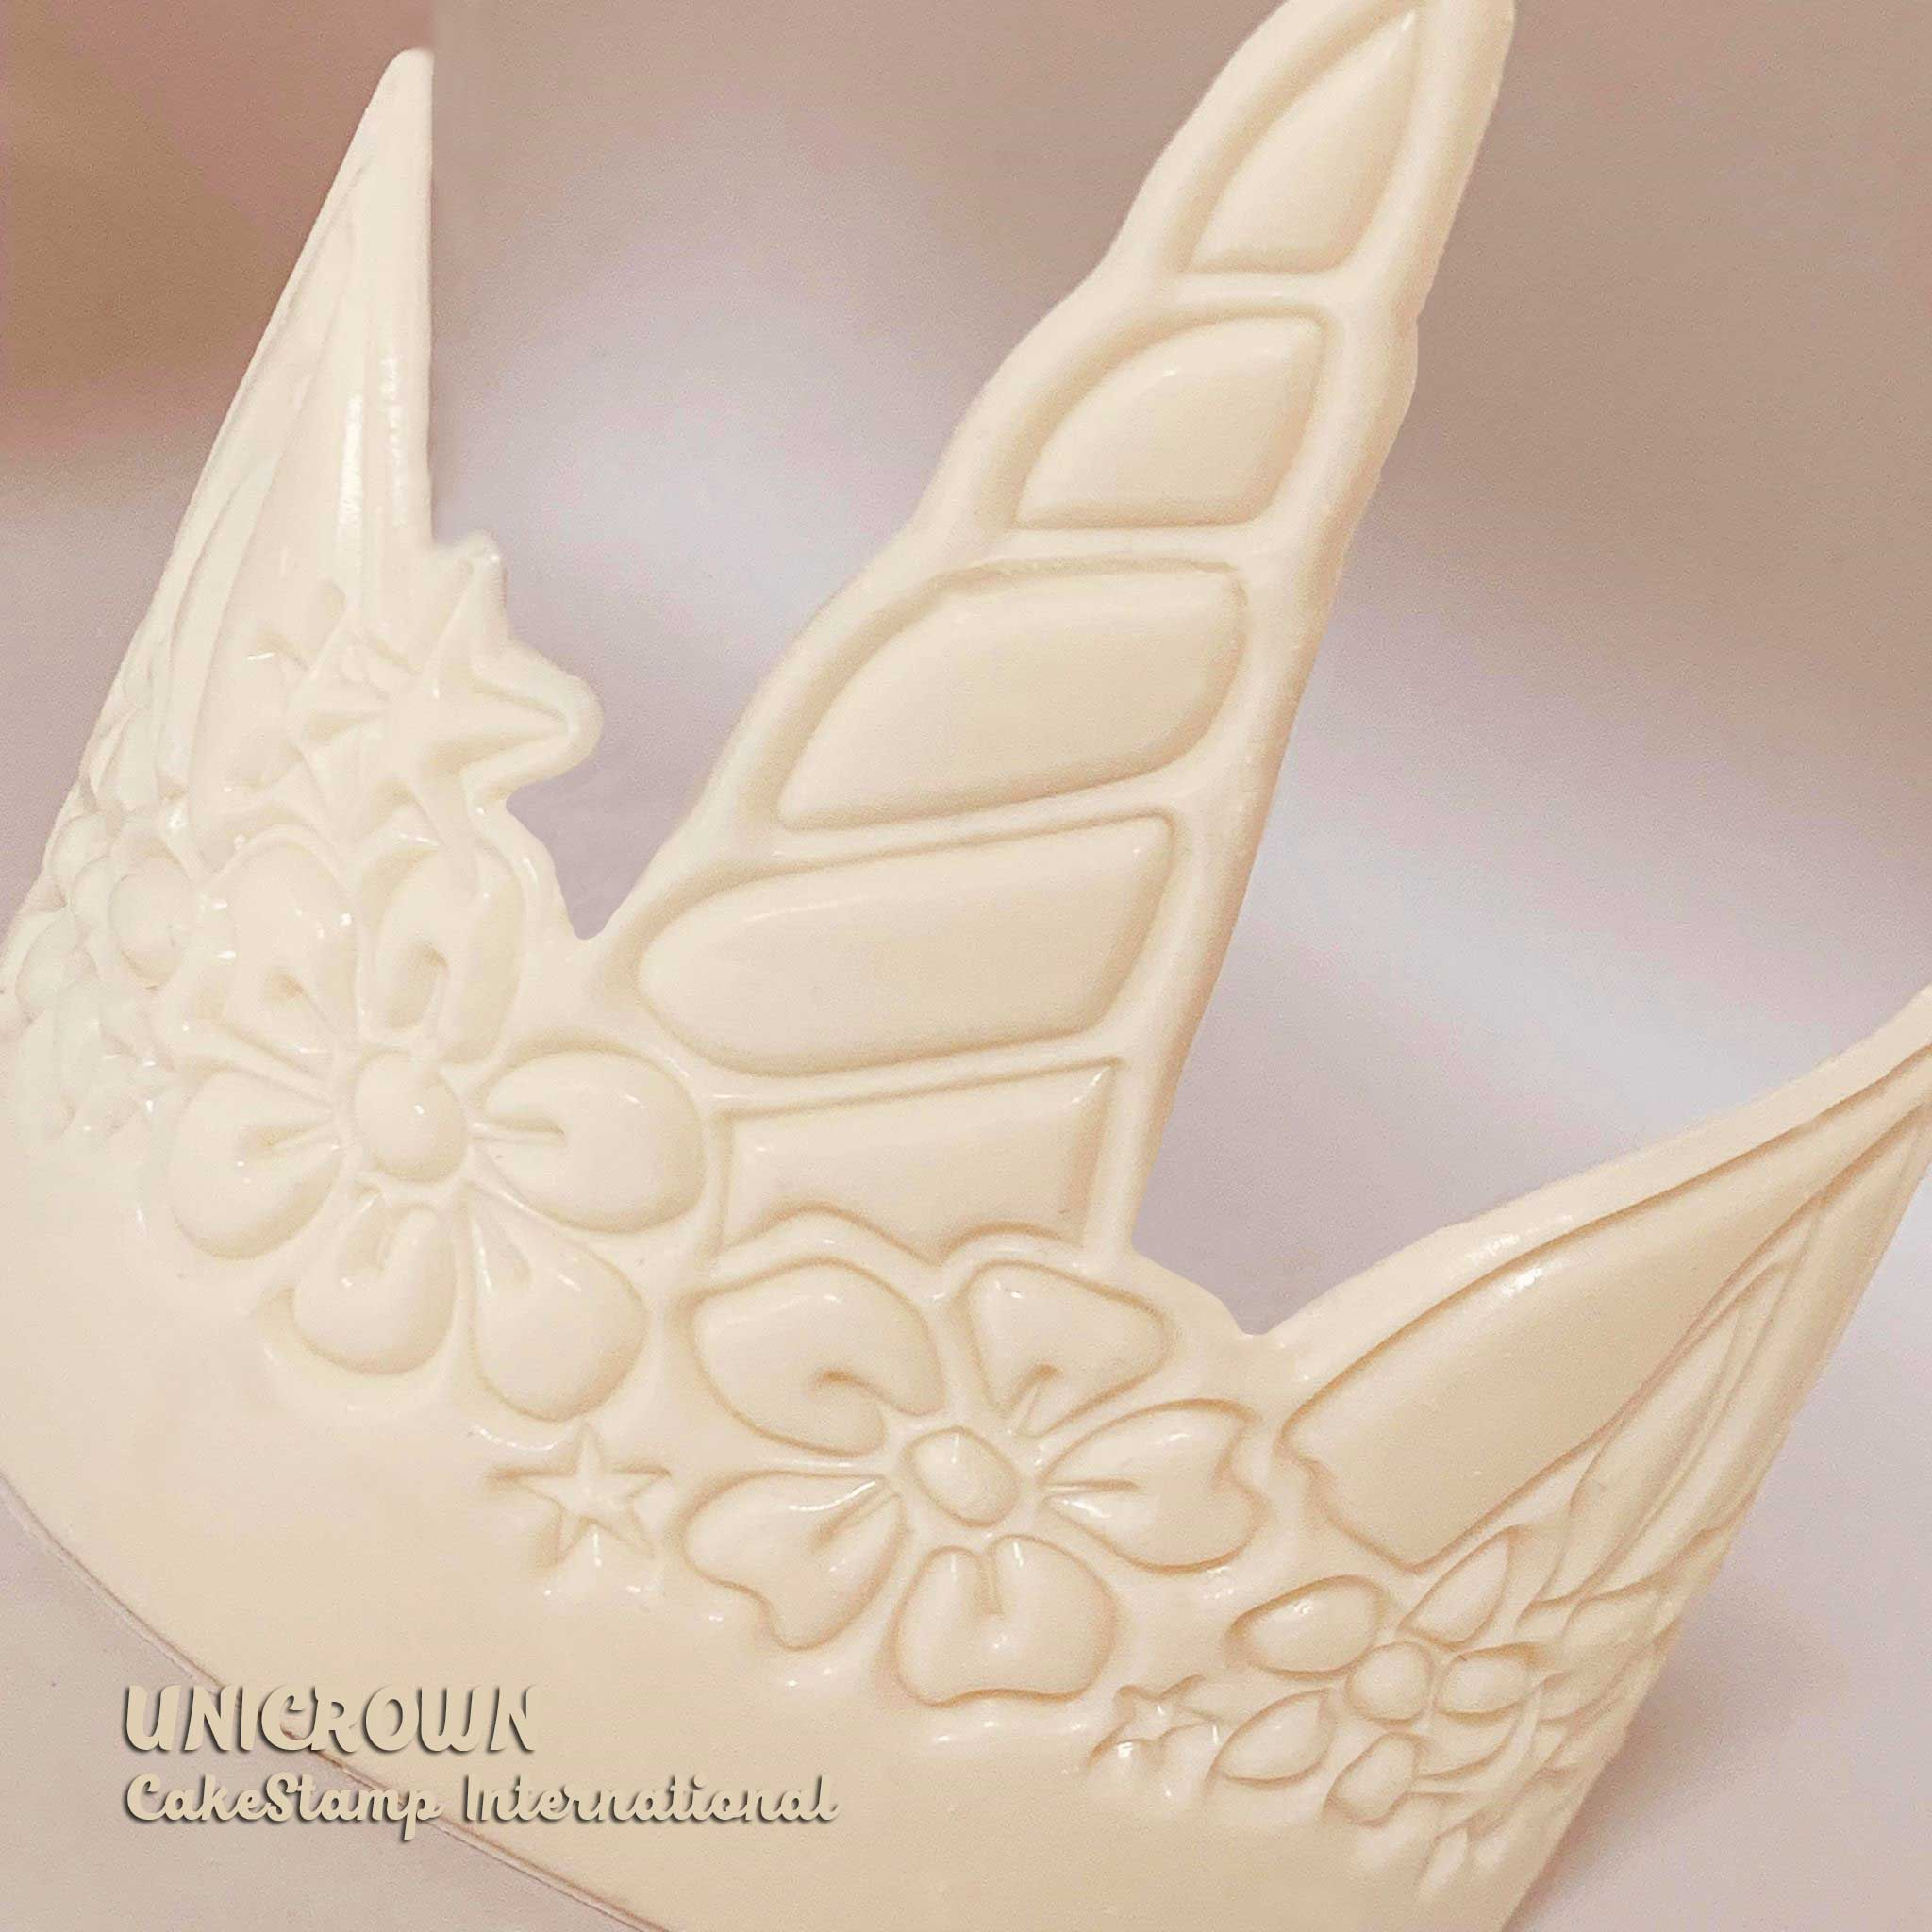 Big UNICORN Tiara Chocolate mold